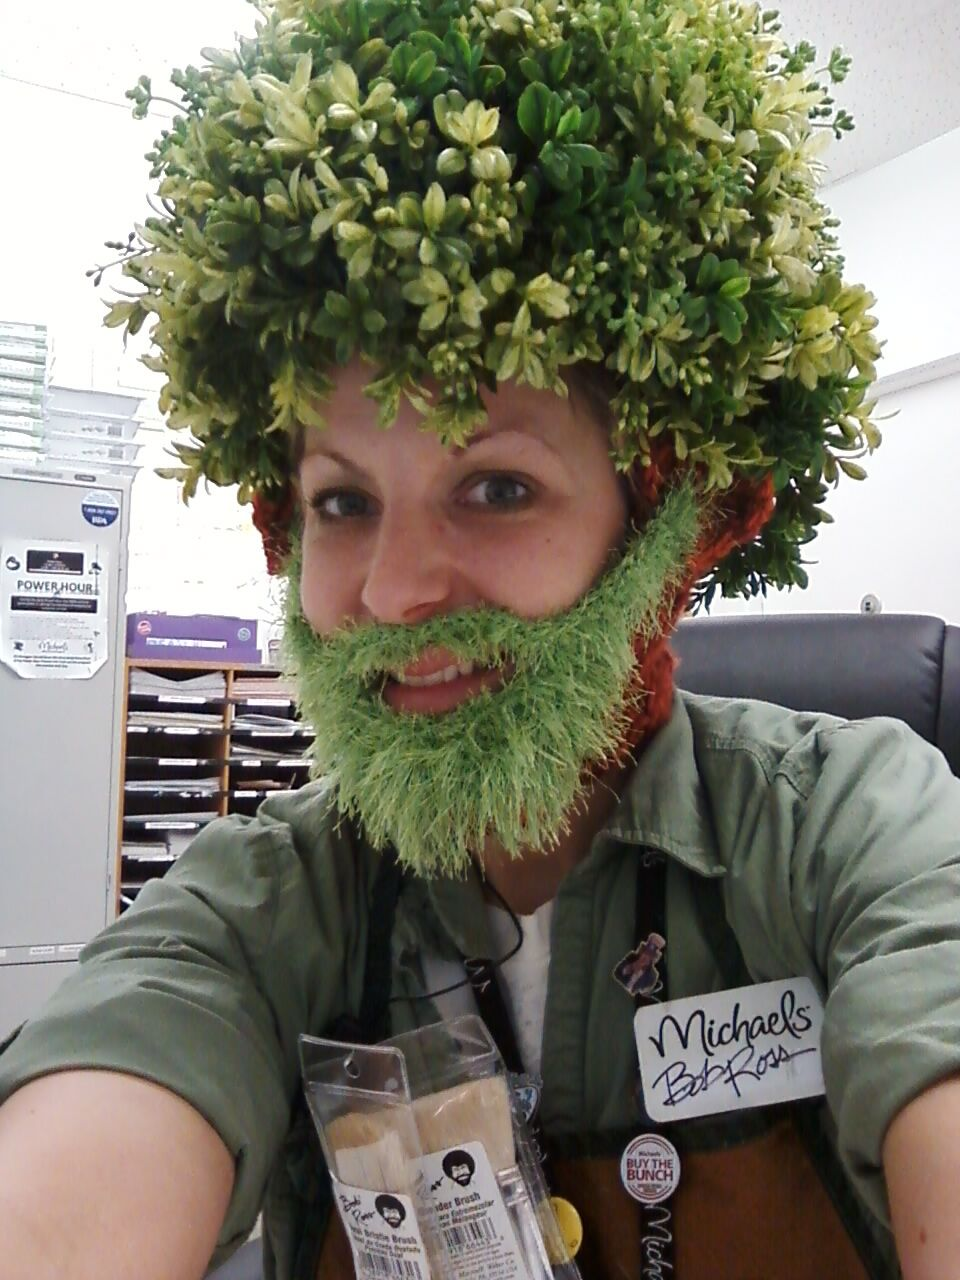 Bob Ross Chia Pet I Crocheted The Head And Beard Then Sewed The Greenery Piece By Piece It Took About 4 Leaf Garlands Fr Chia Pet Costumes Chia Pet Bob Ross